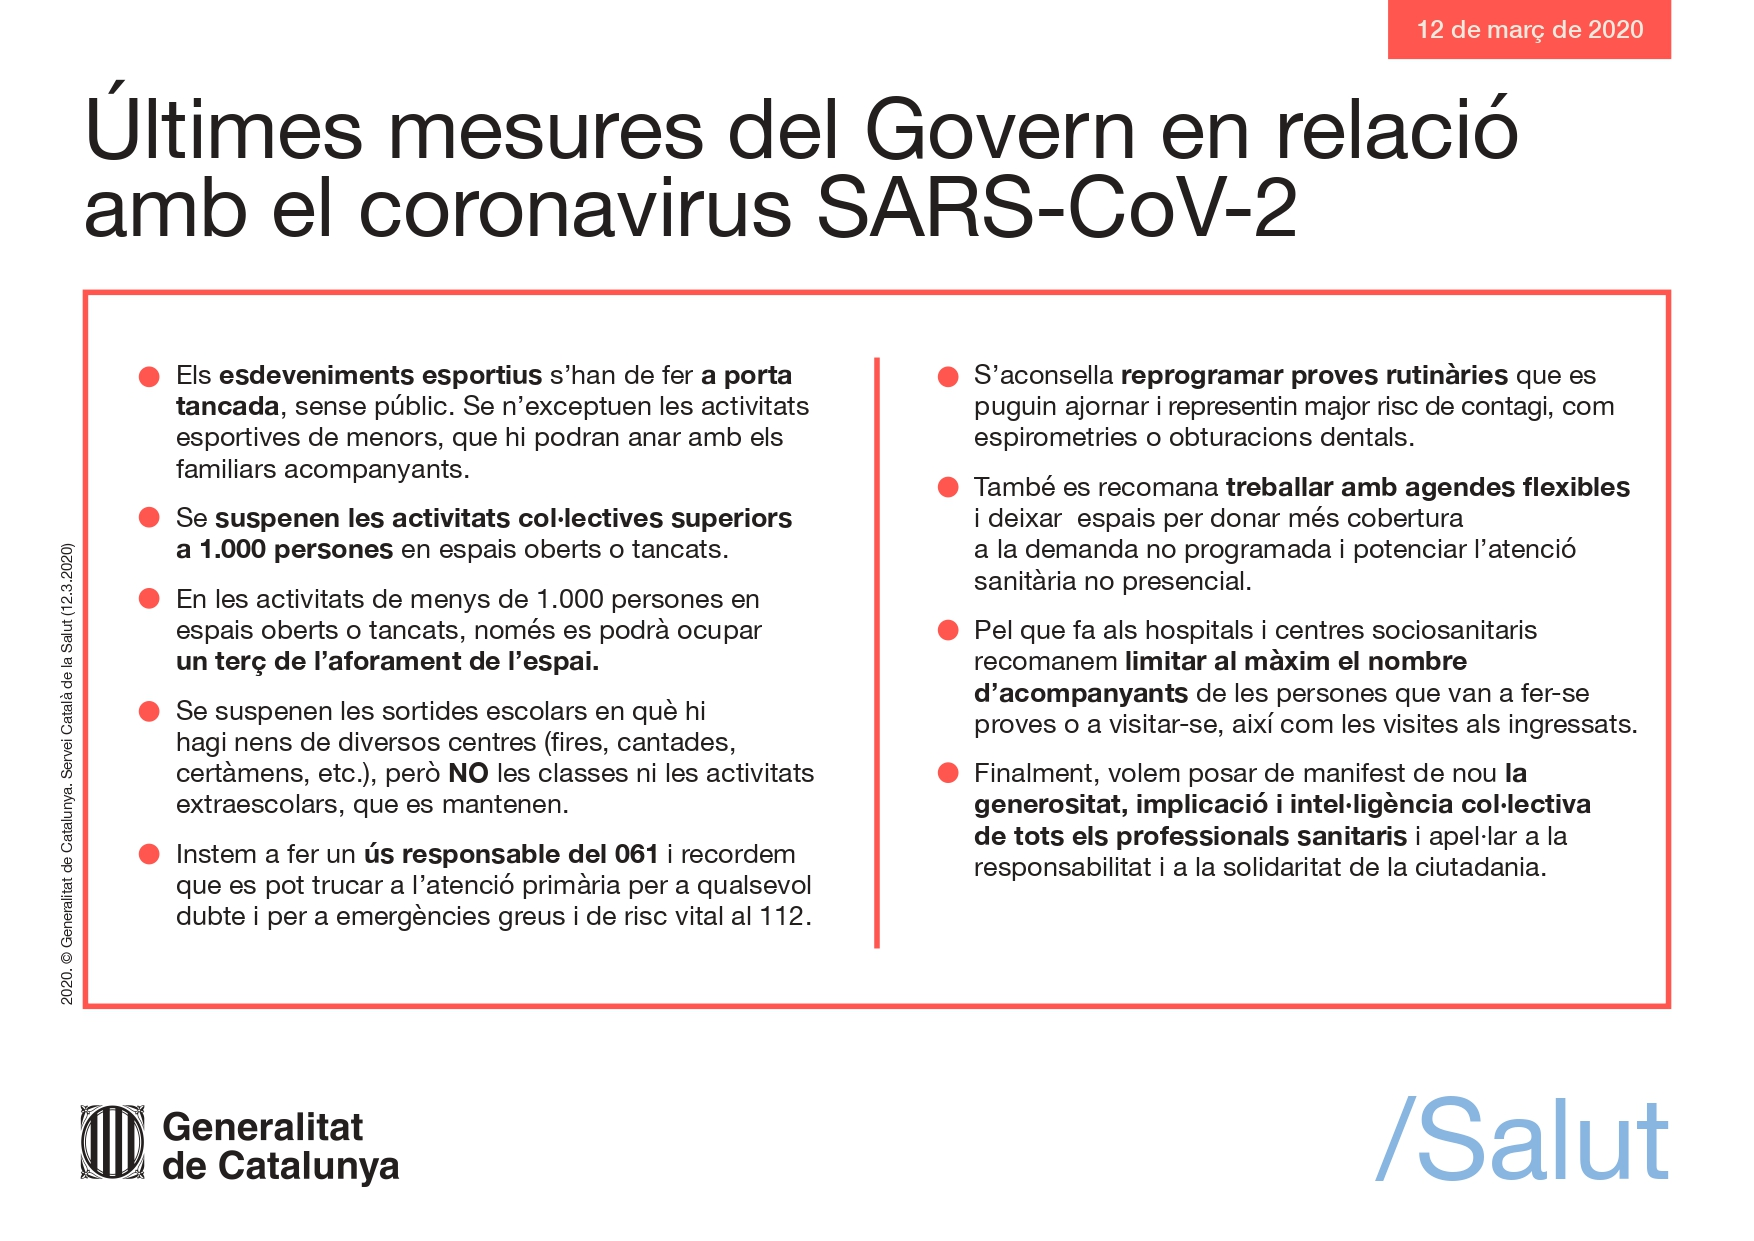 coronavirus-mesures-govern-horitzontal_pages-to-jpg-0001 (1)